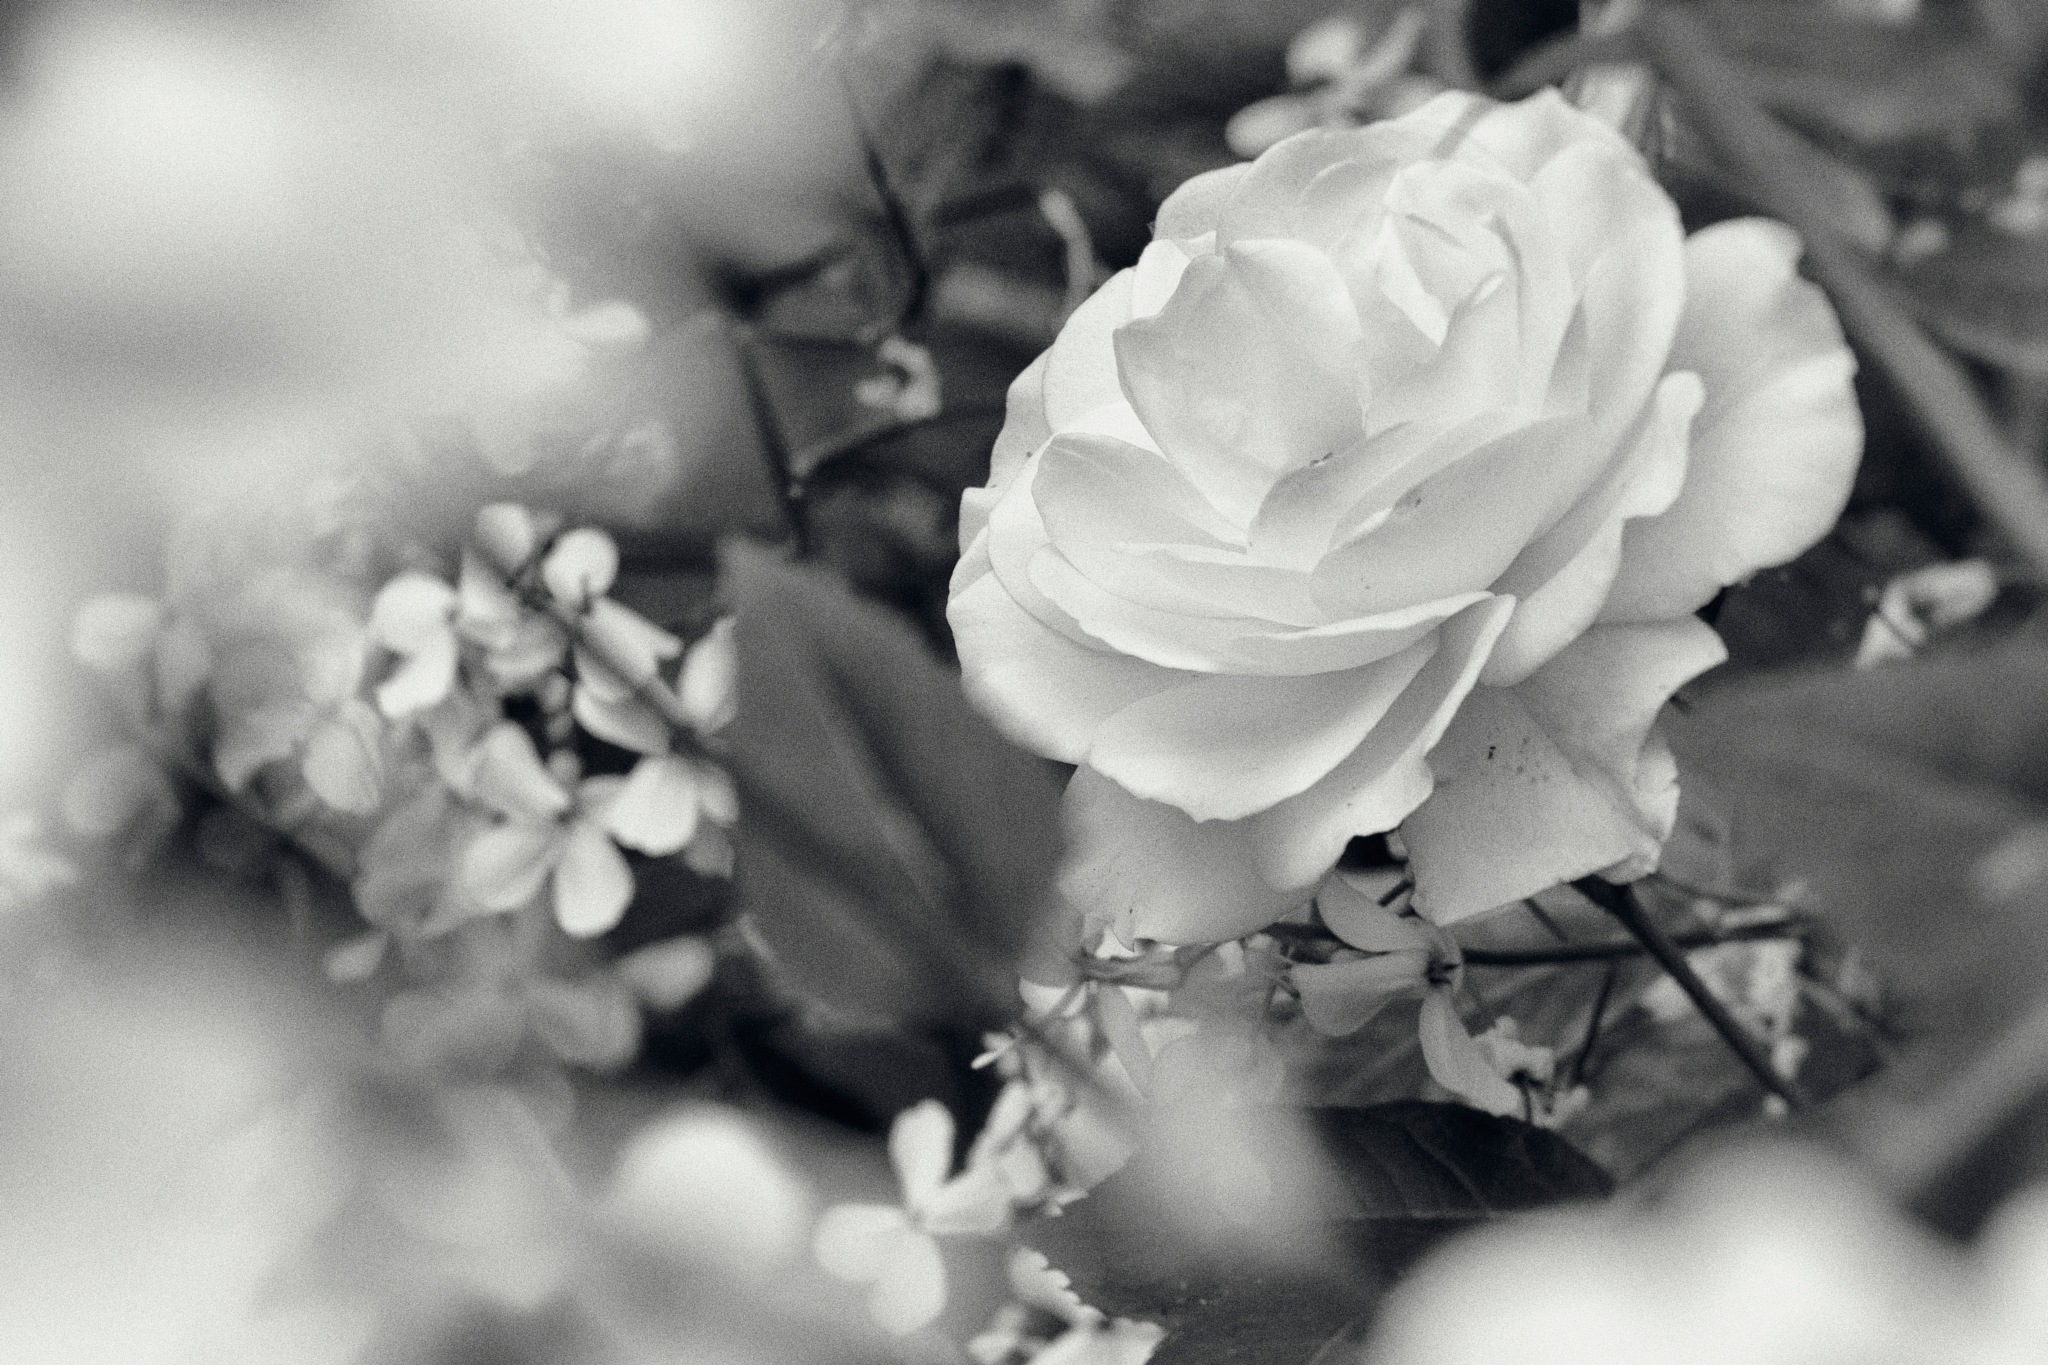 A Fairer Rose by In Praise Of Shadows